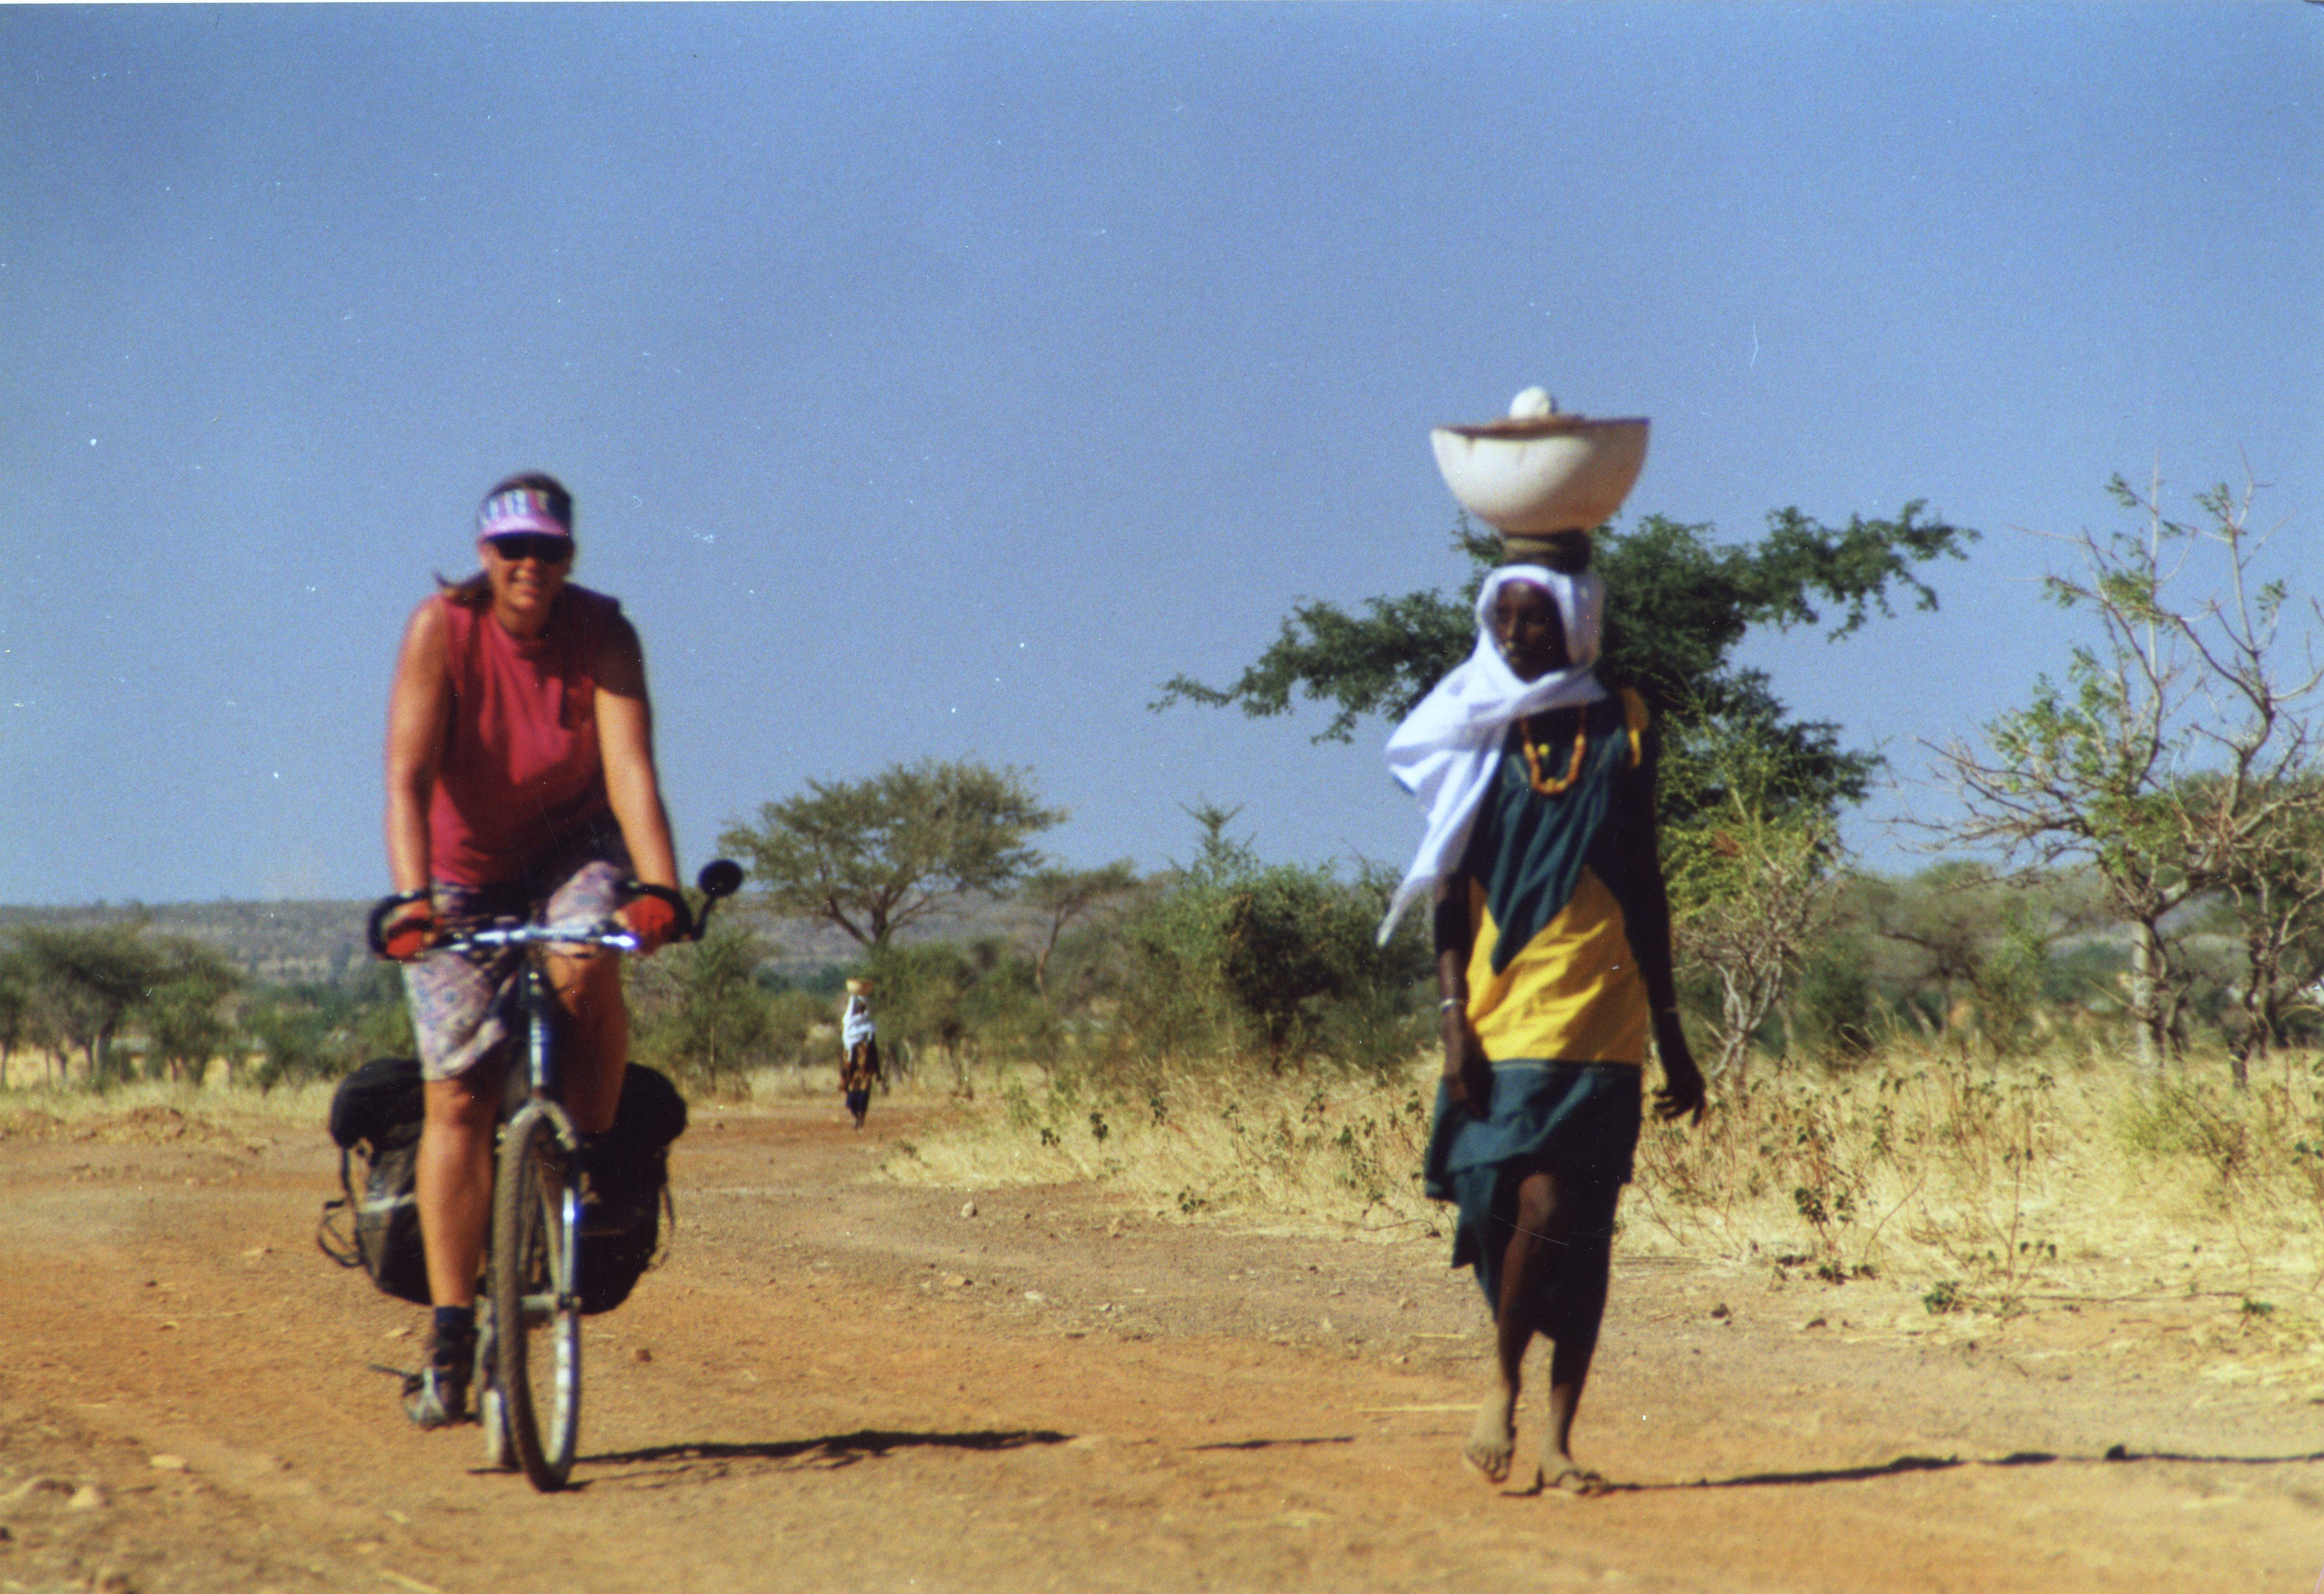 """Nancy Explains: """"Me cycling in Mali. We had the brilliant idea of taking off across a dirt road the map showed cutting through the desert. As we progressed farther, the road condition deteriorated and eventually the road turned into nothing more than a small trail. People assured us that Djenne was """"that way"""" so we kept going - for about 80 miles along the little trail going through the desert. We were thrilled when we finally emerged from the desert!"""""""